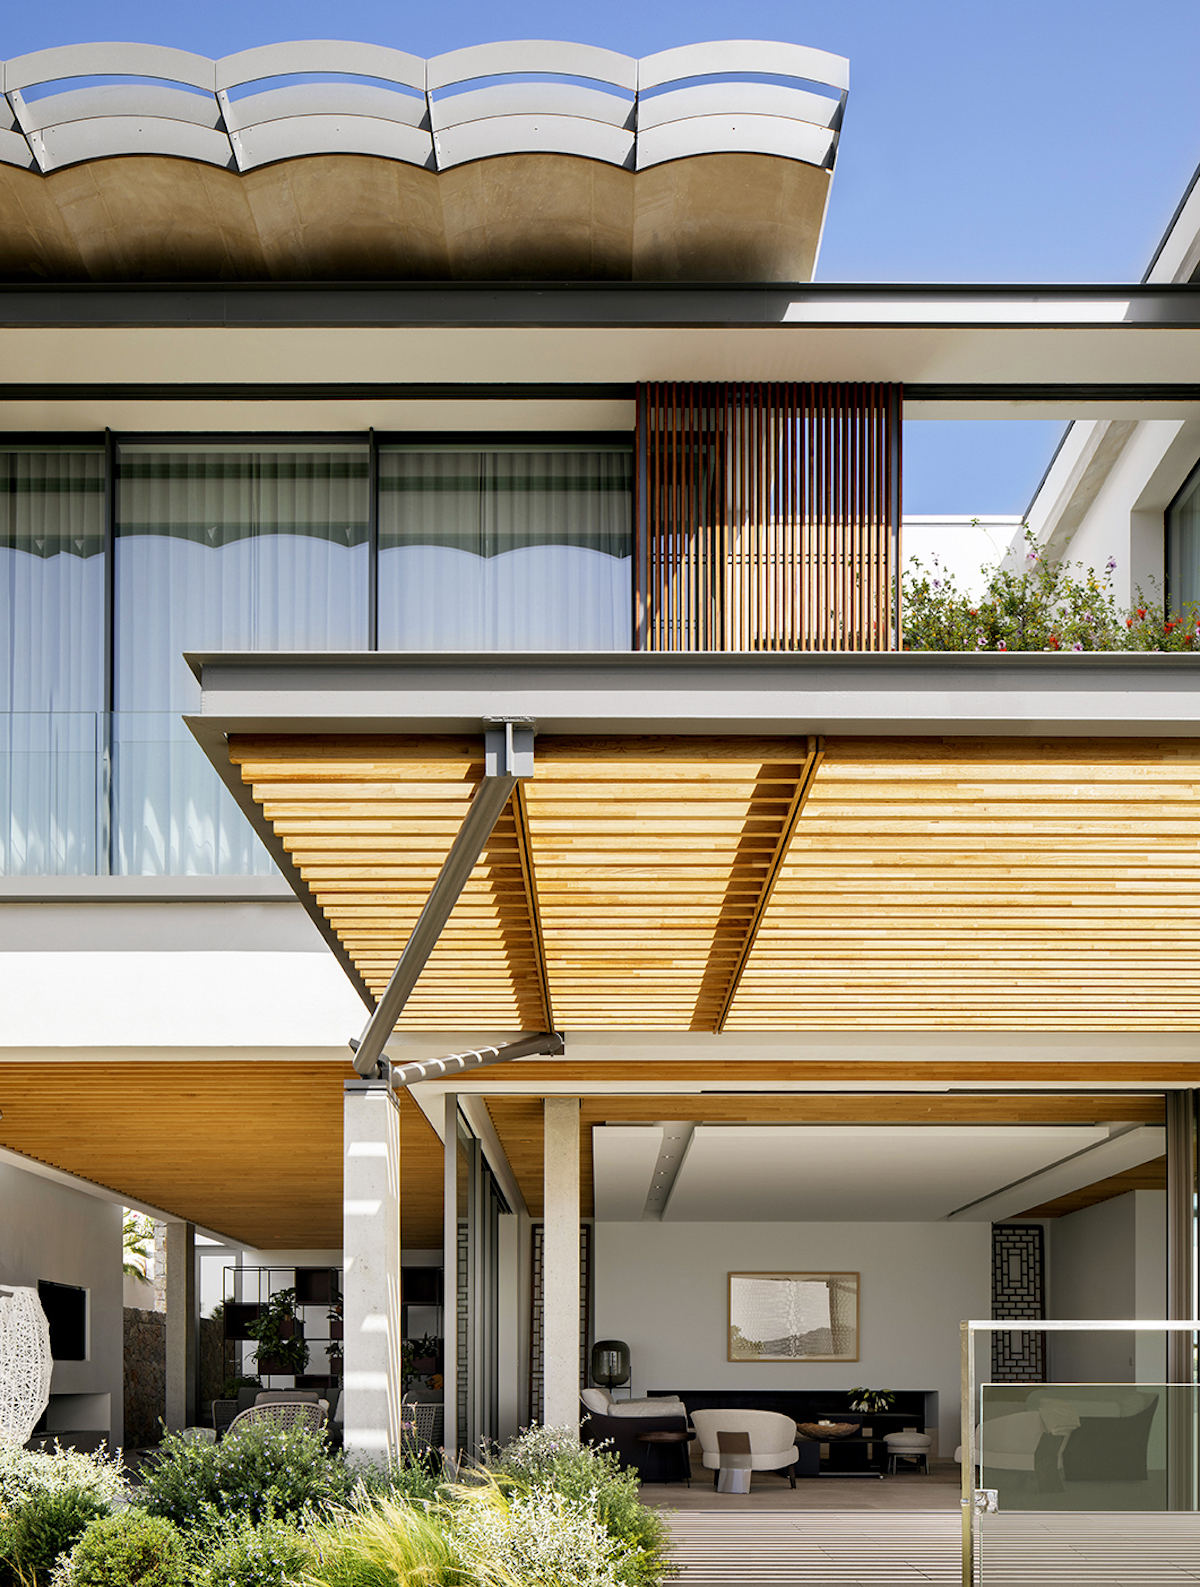 The roof has a very interesting design with traditional influences featuring a wavy form that helps the residence blend into the surroundings